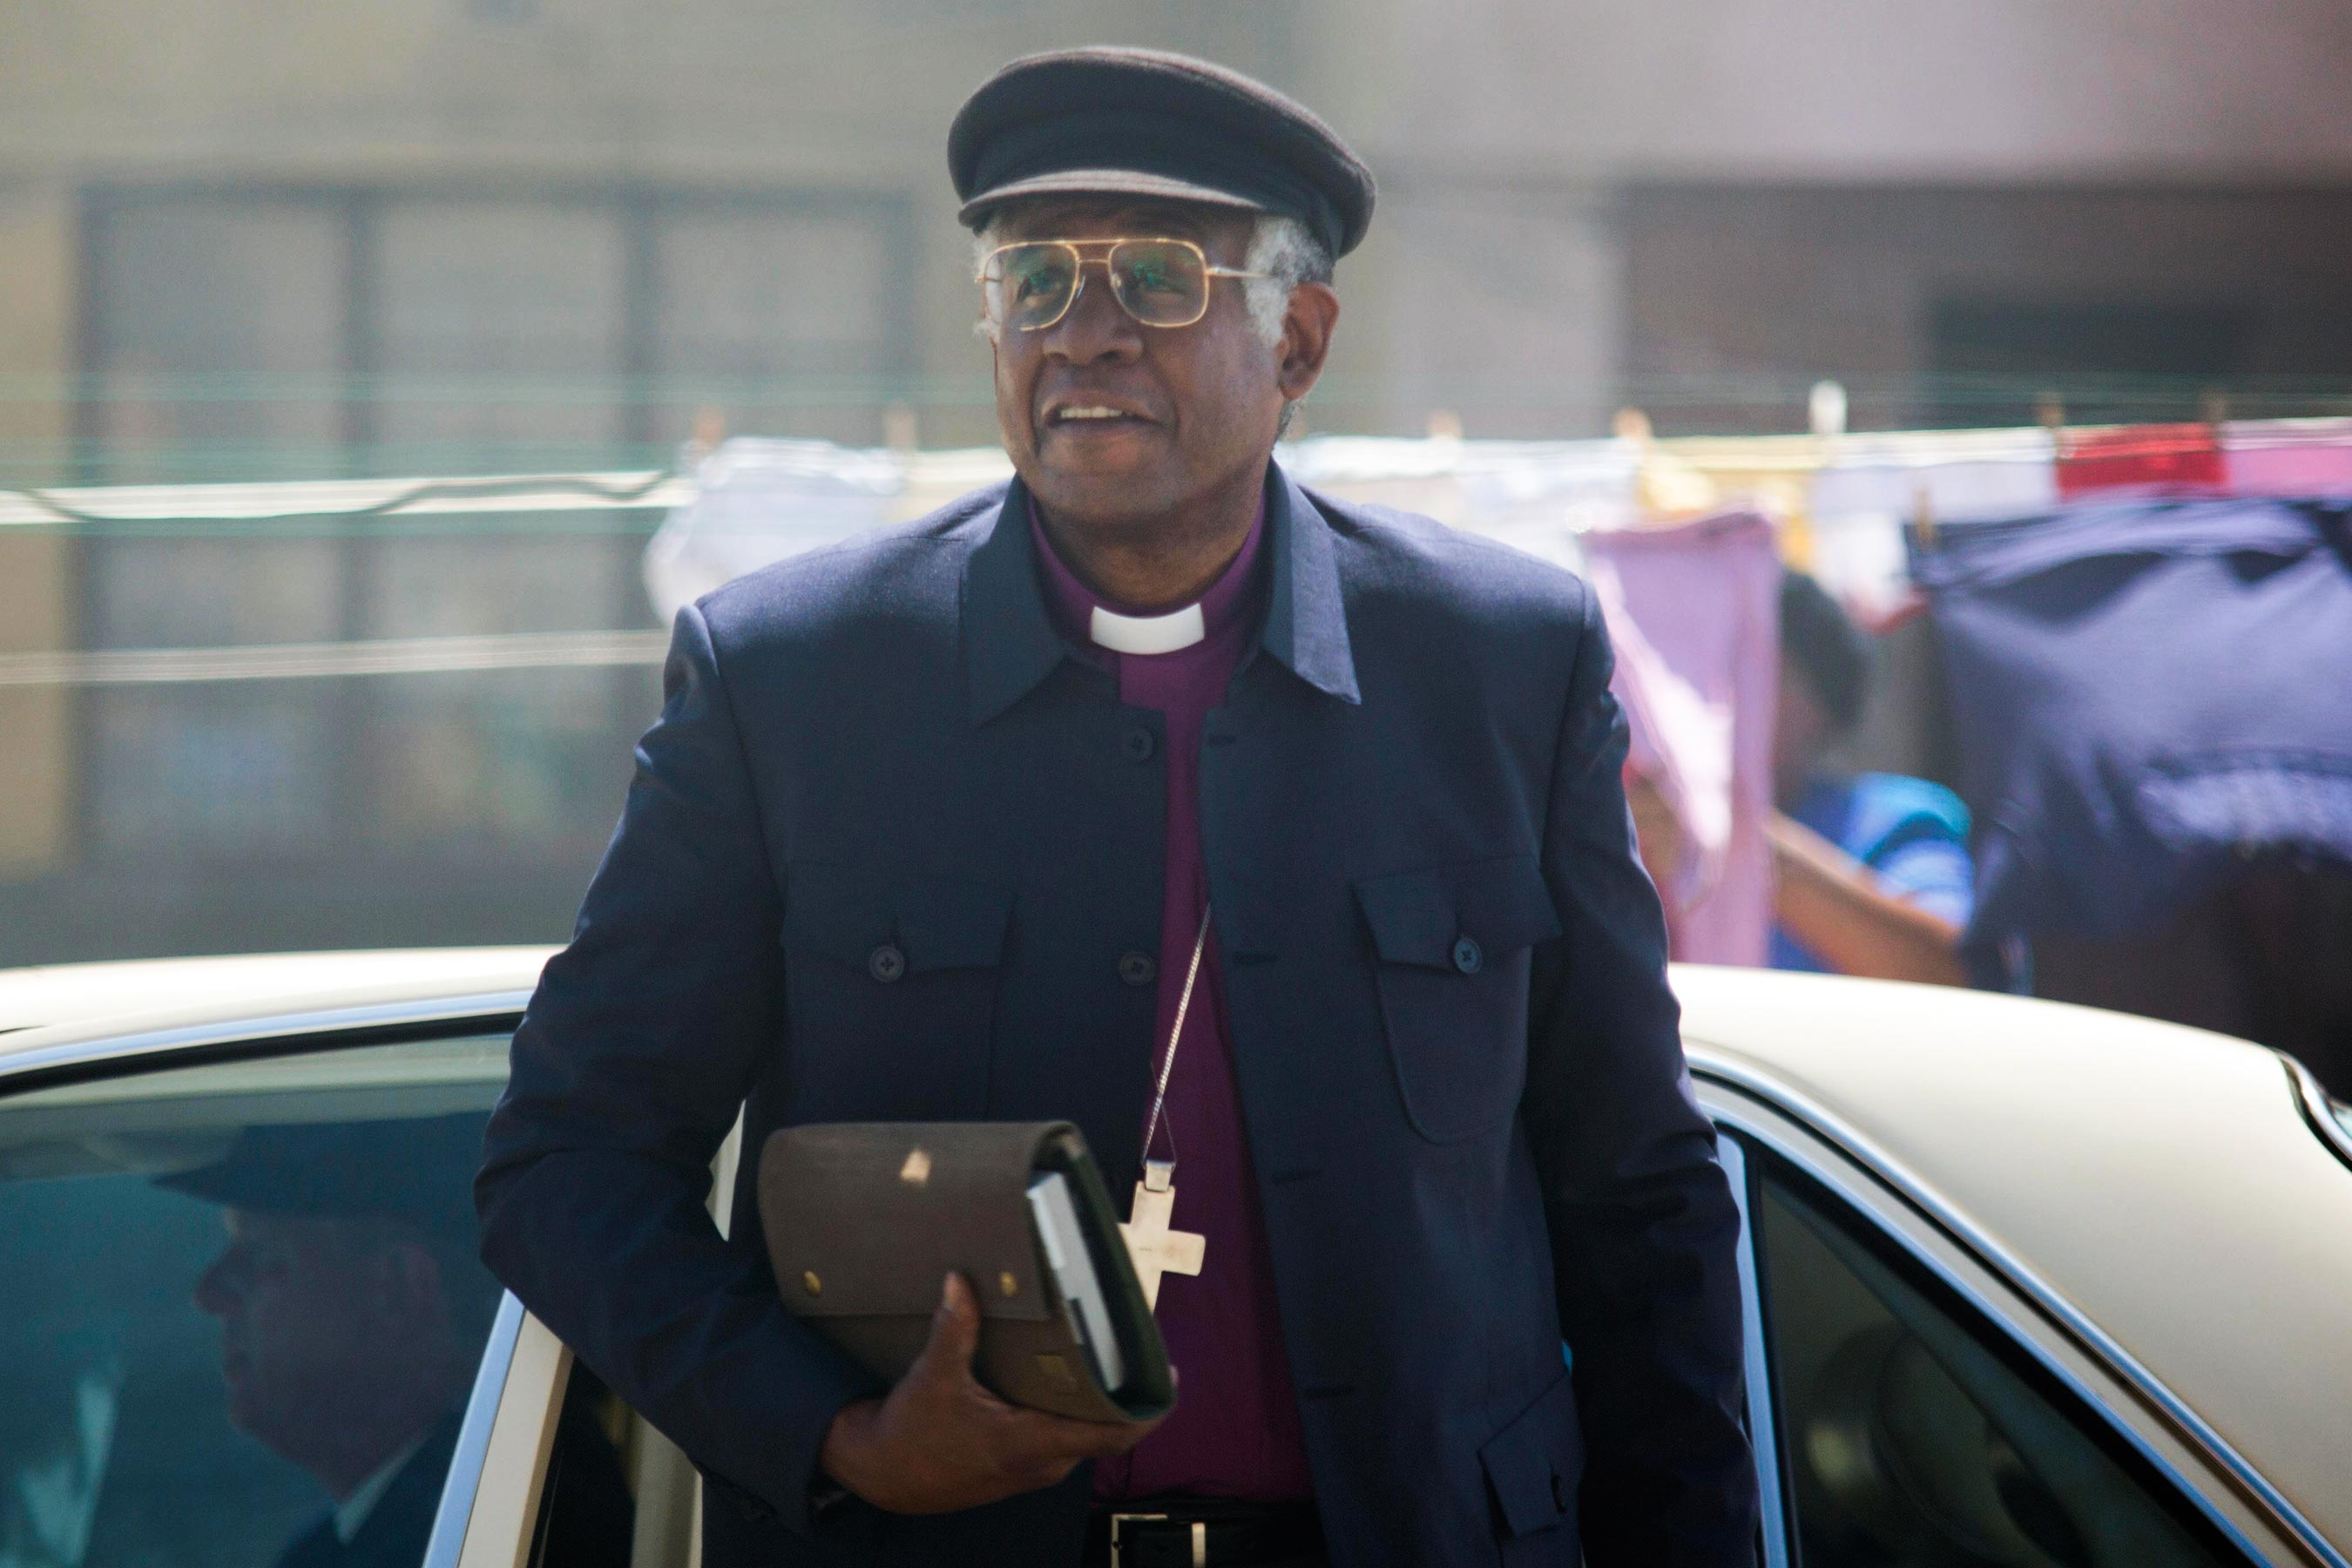 The Forgiven trailer has Forest Whitaker as Desmond Tutu